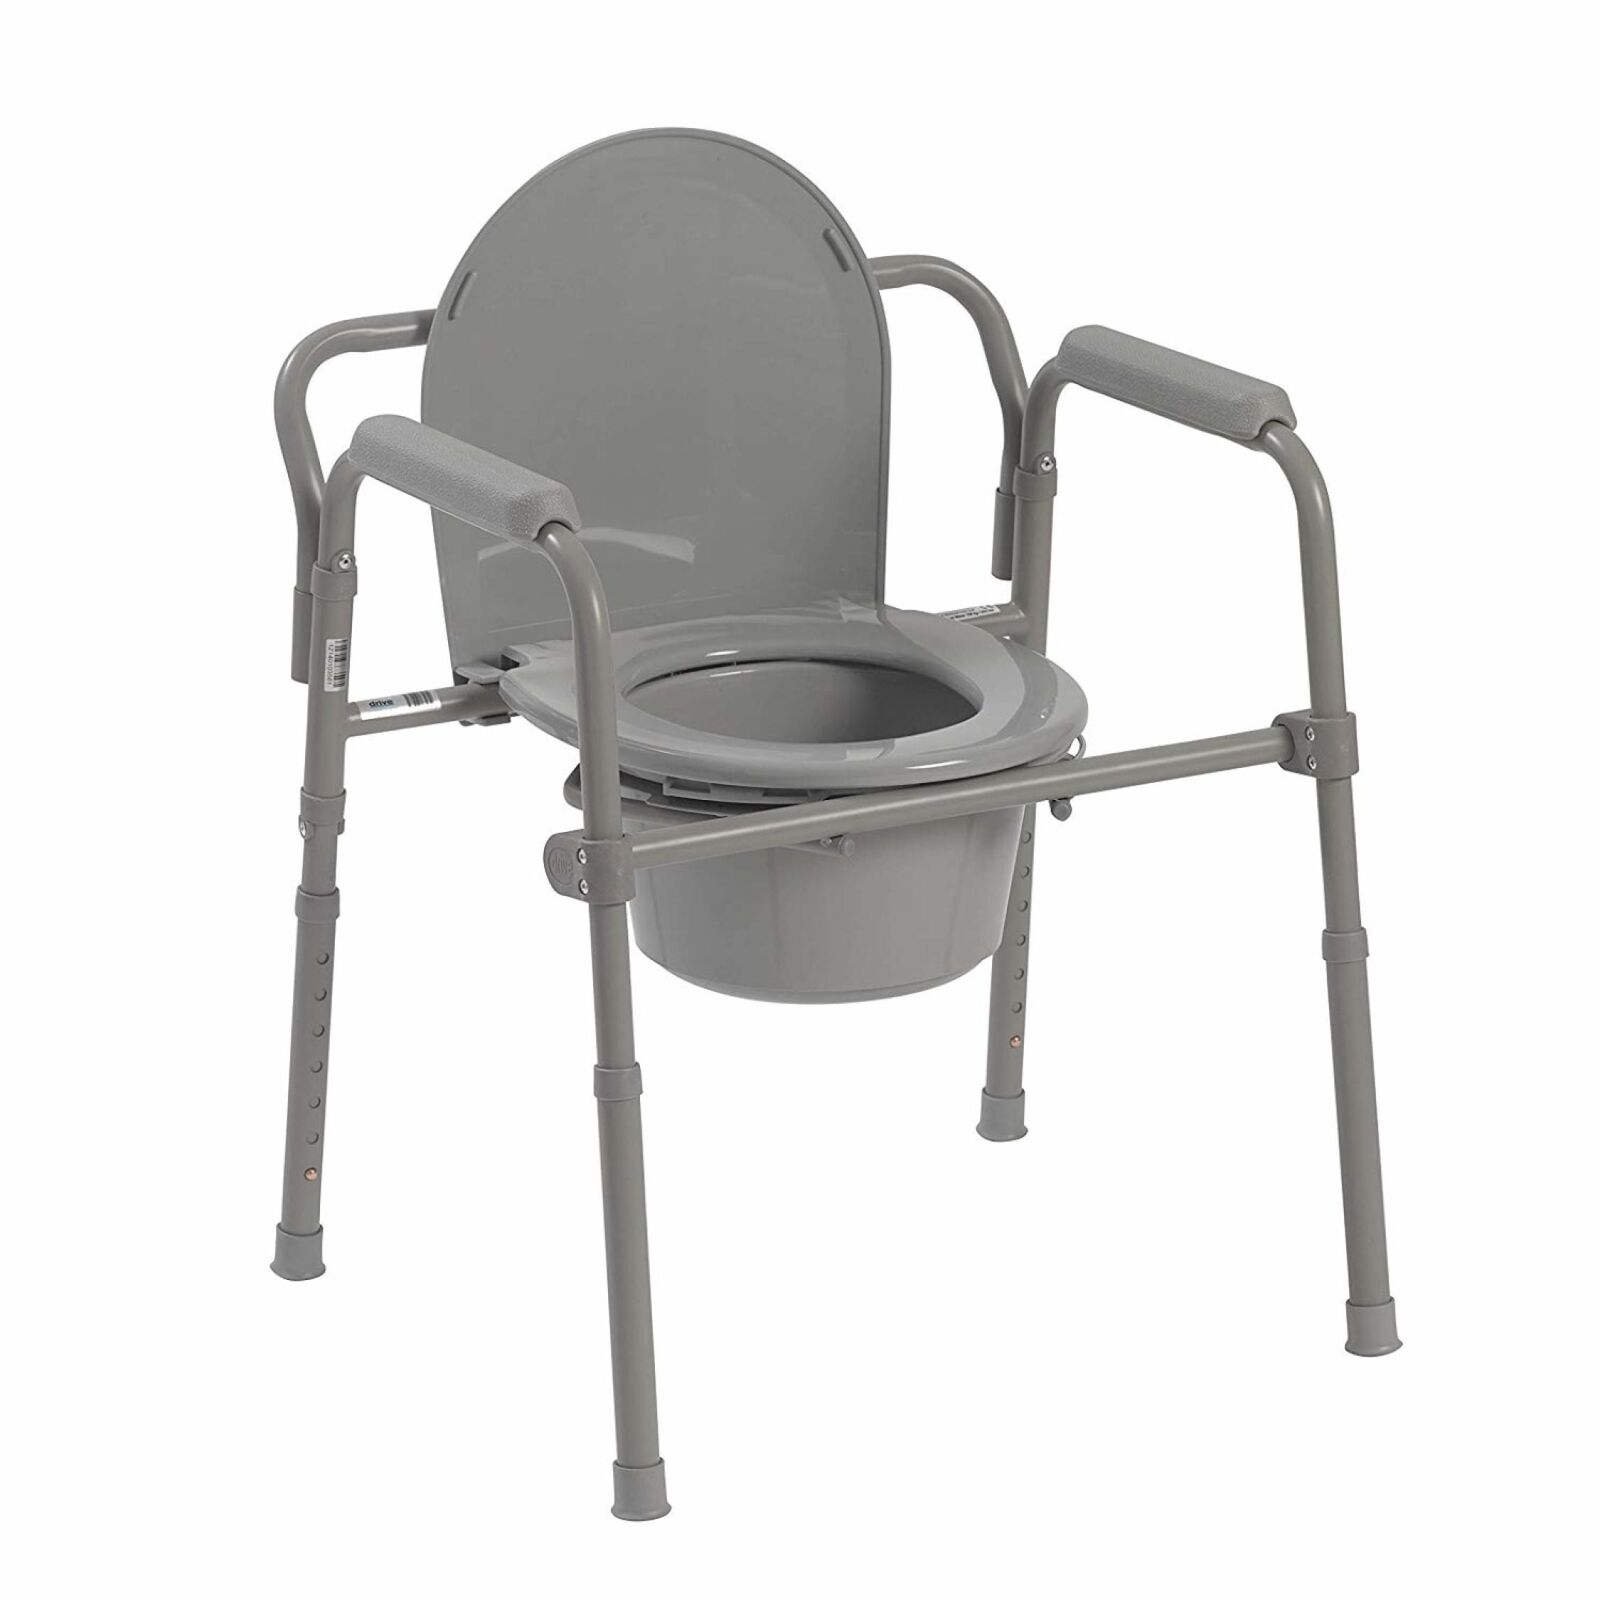 Steel Folding Bedside Commode Chair Portable Toilet For Seni